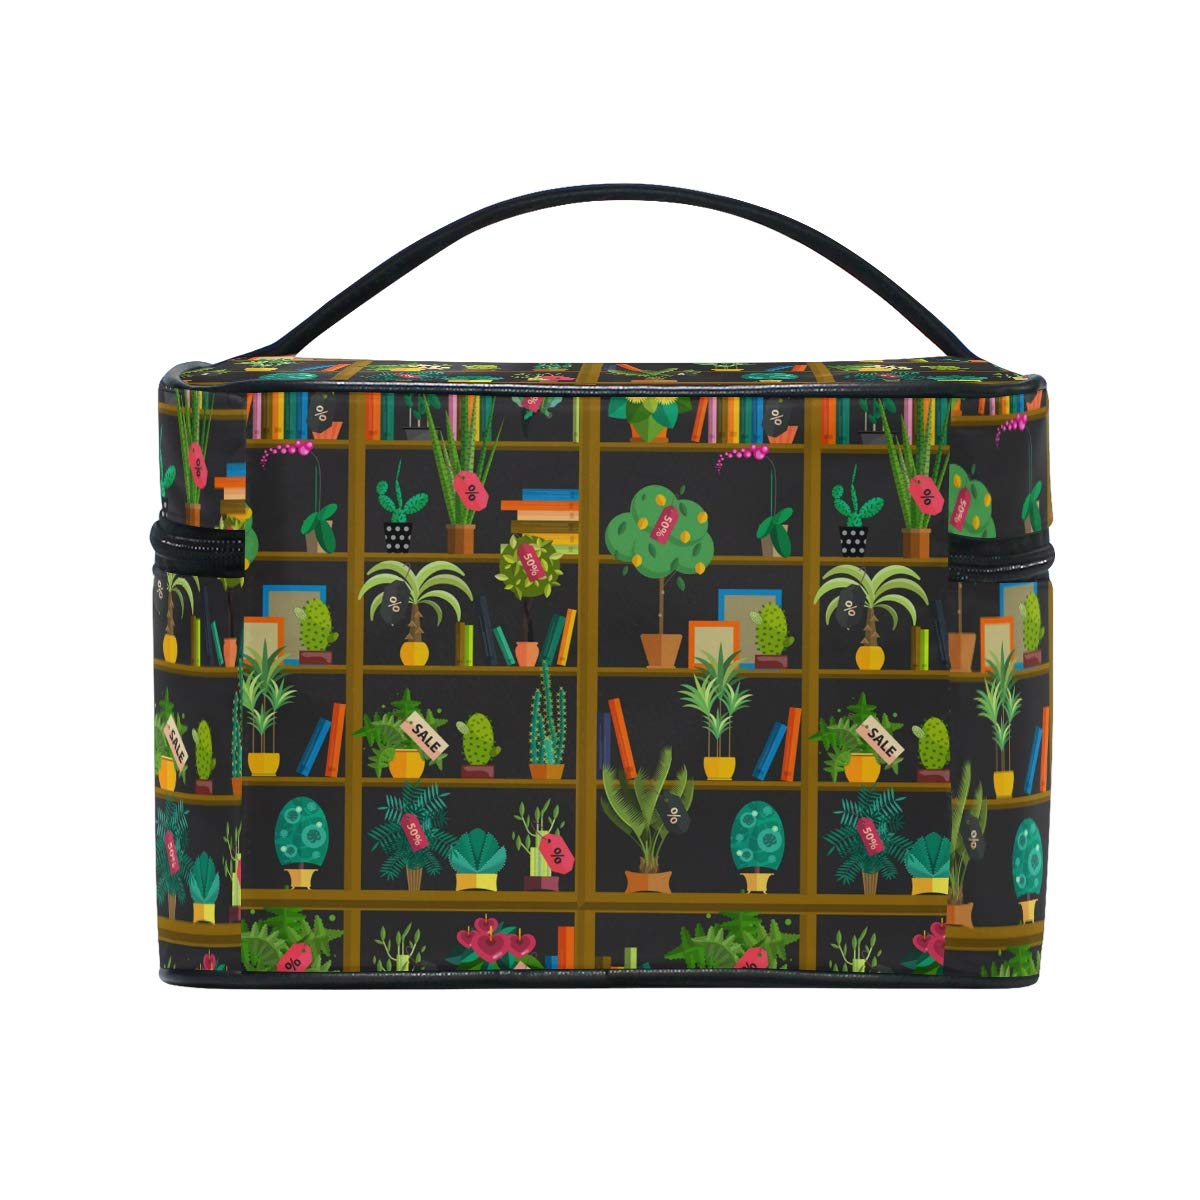 Amazon.com : Cosmetic Bags Flower Stand Cactus Large Travel ...